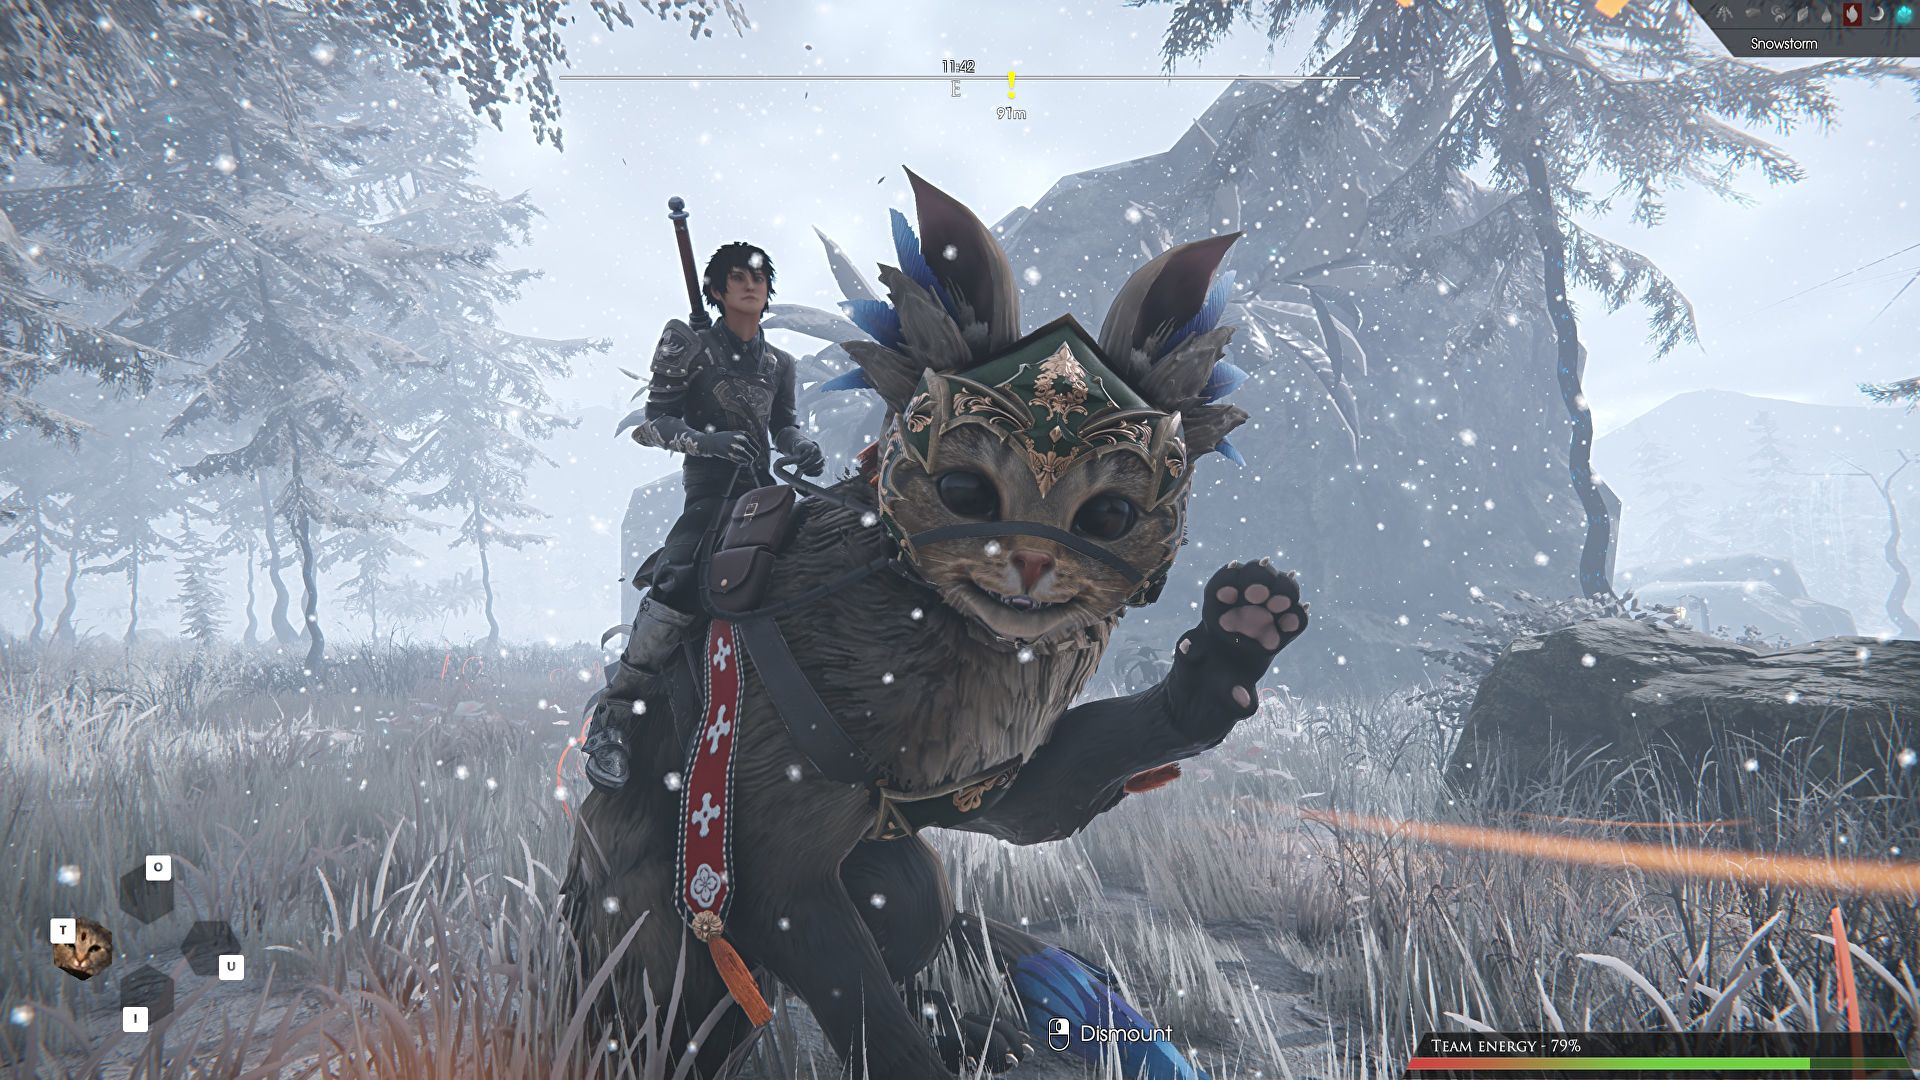 Edge Of Eternity is getting a full launch and complete story this summer